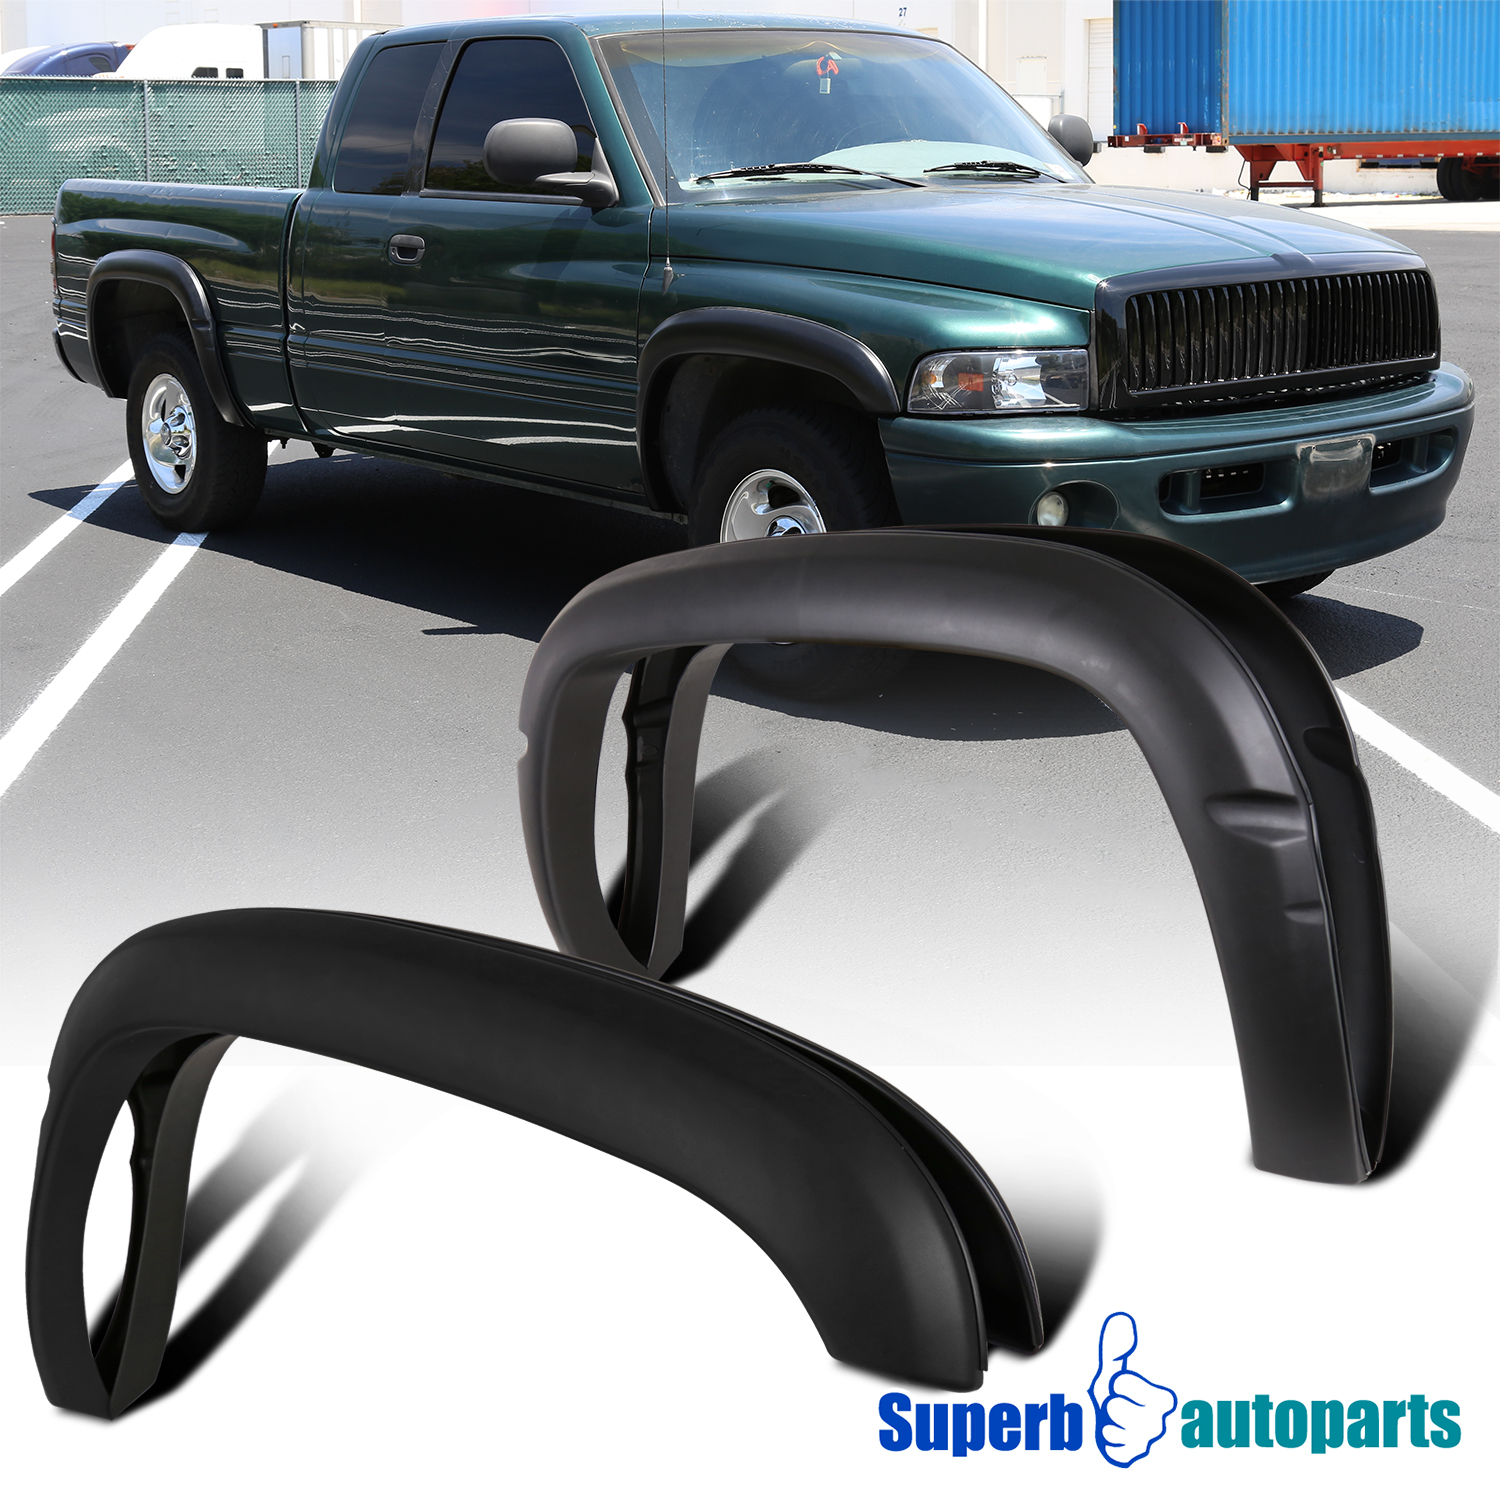 2001 Ram 1500 >> Details About For 1994 2001 Ram 1500 2500 3500 4pcs Textured Black Bolt On Style Fender Flares